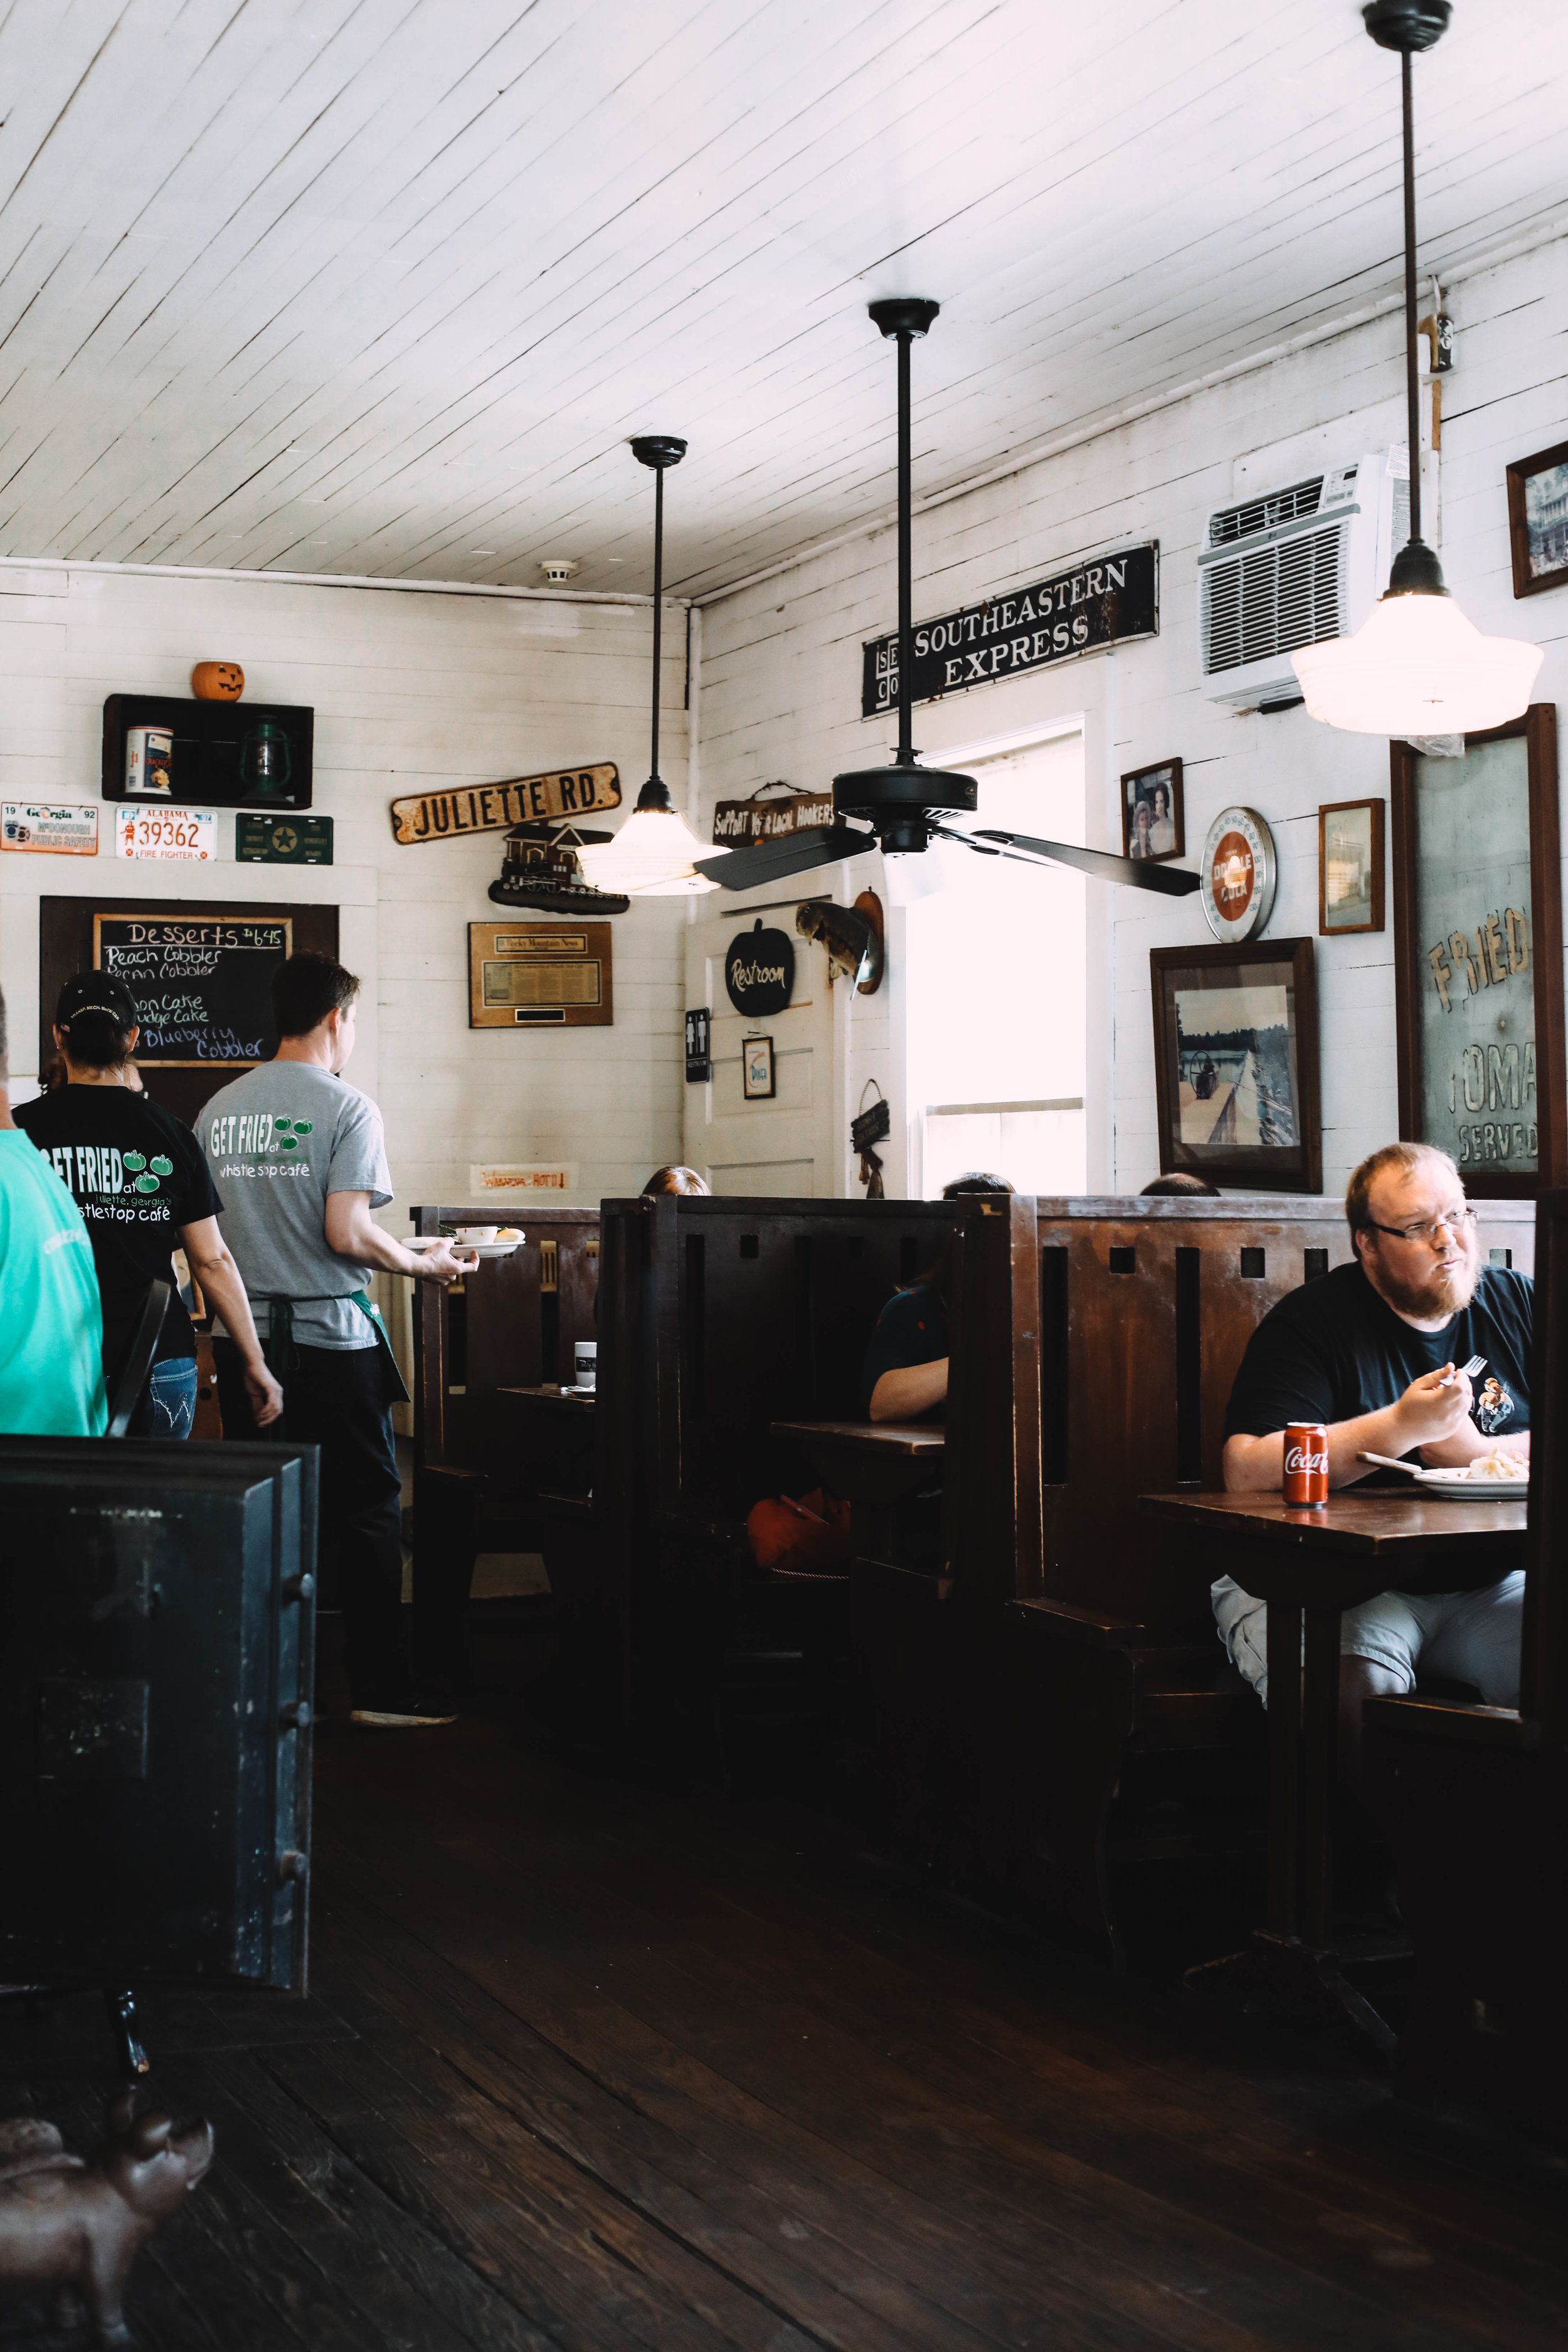 On Sunday, we paid a visit to the Whistle Stop Cafe - a favorite!!